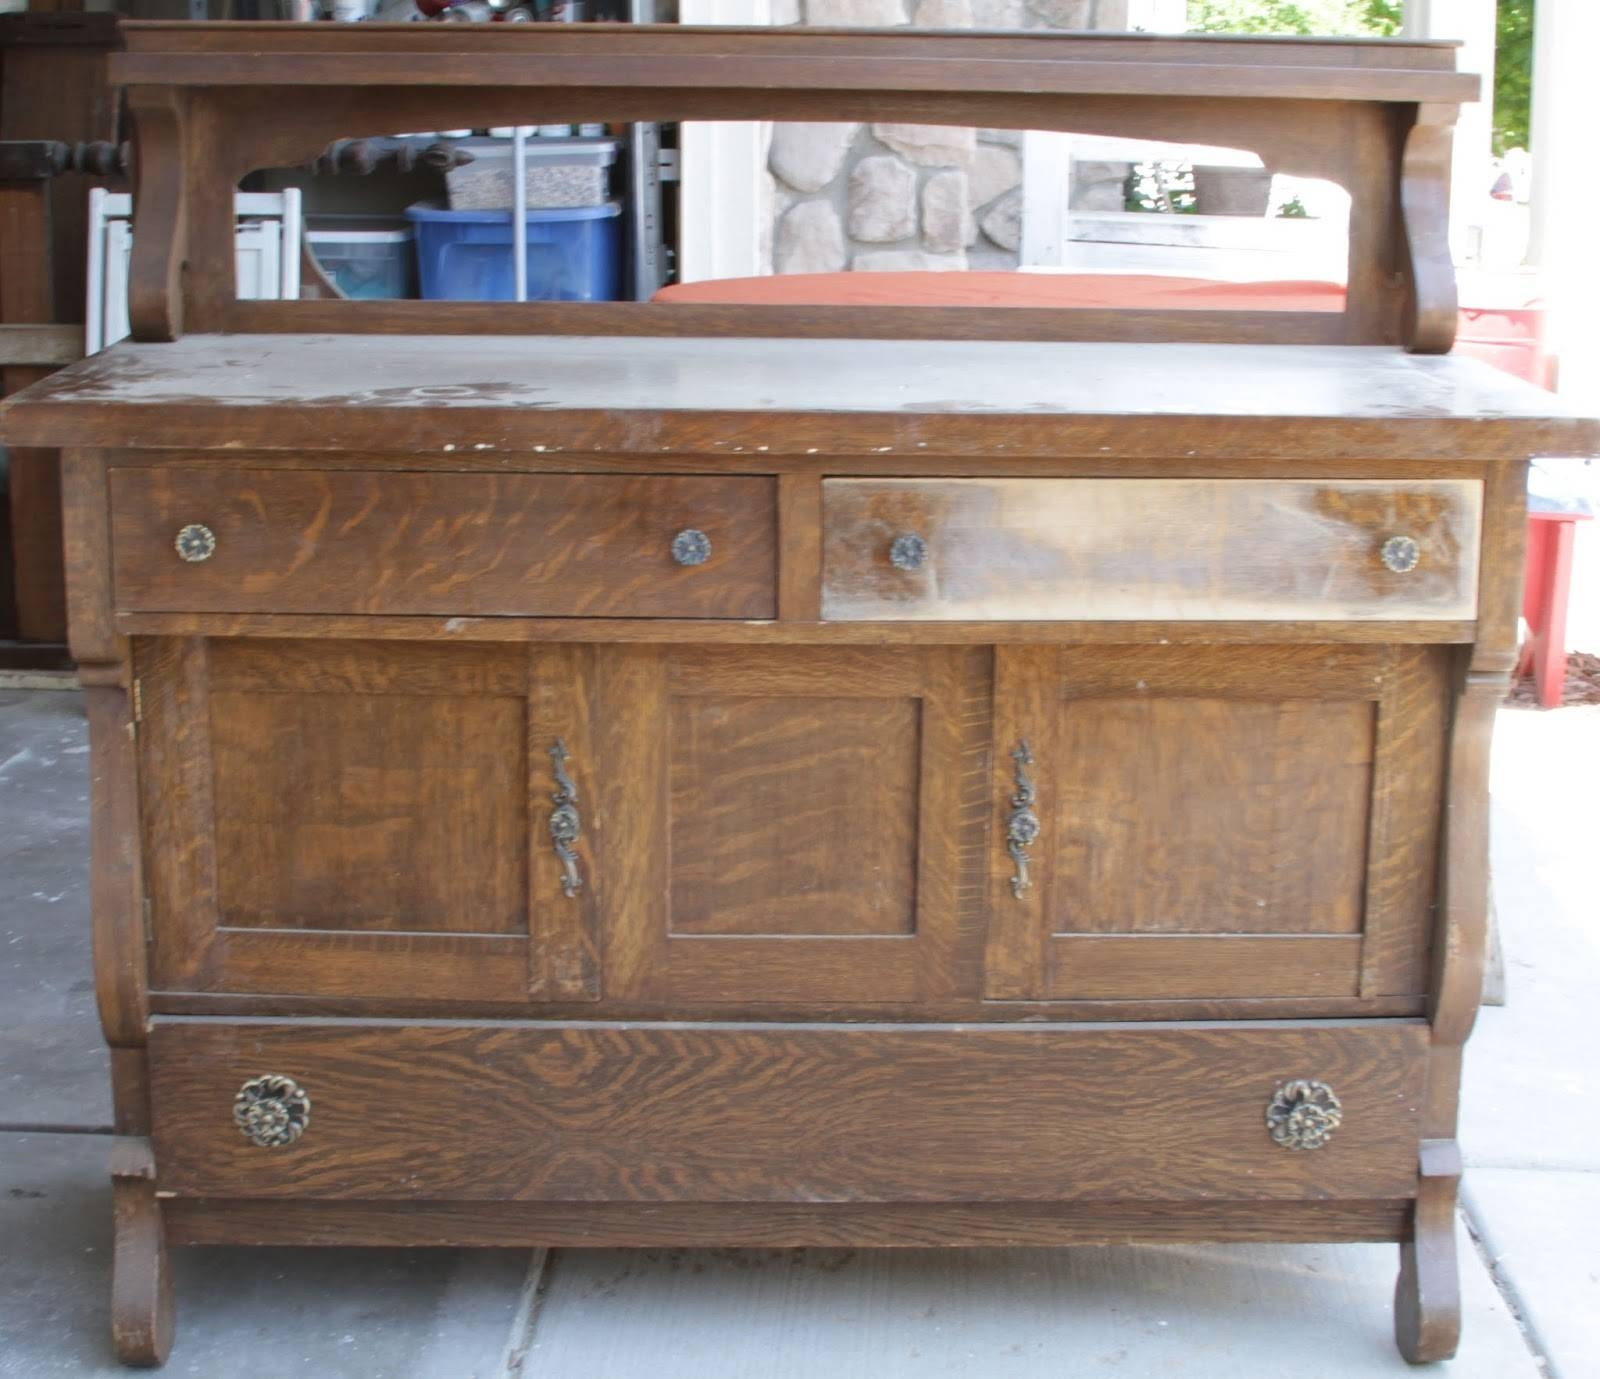 Willow Creek: Antique 3 Toned Distressed Sideboard Buffet With Regard To Distressed Sideboards And Buffets (#15 of 15)